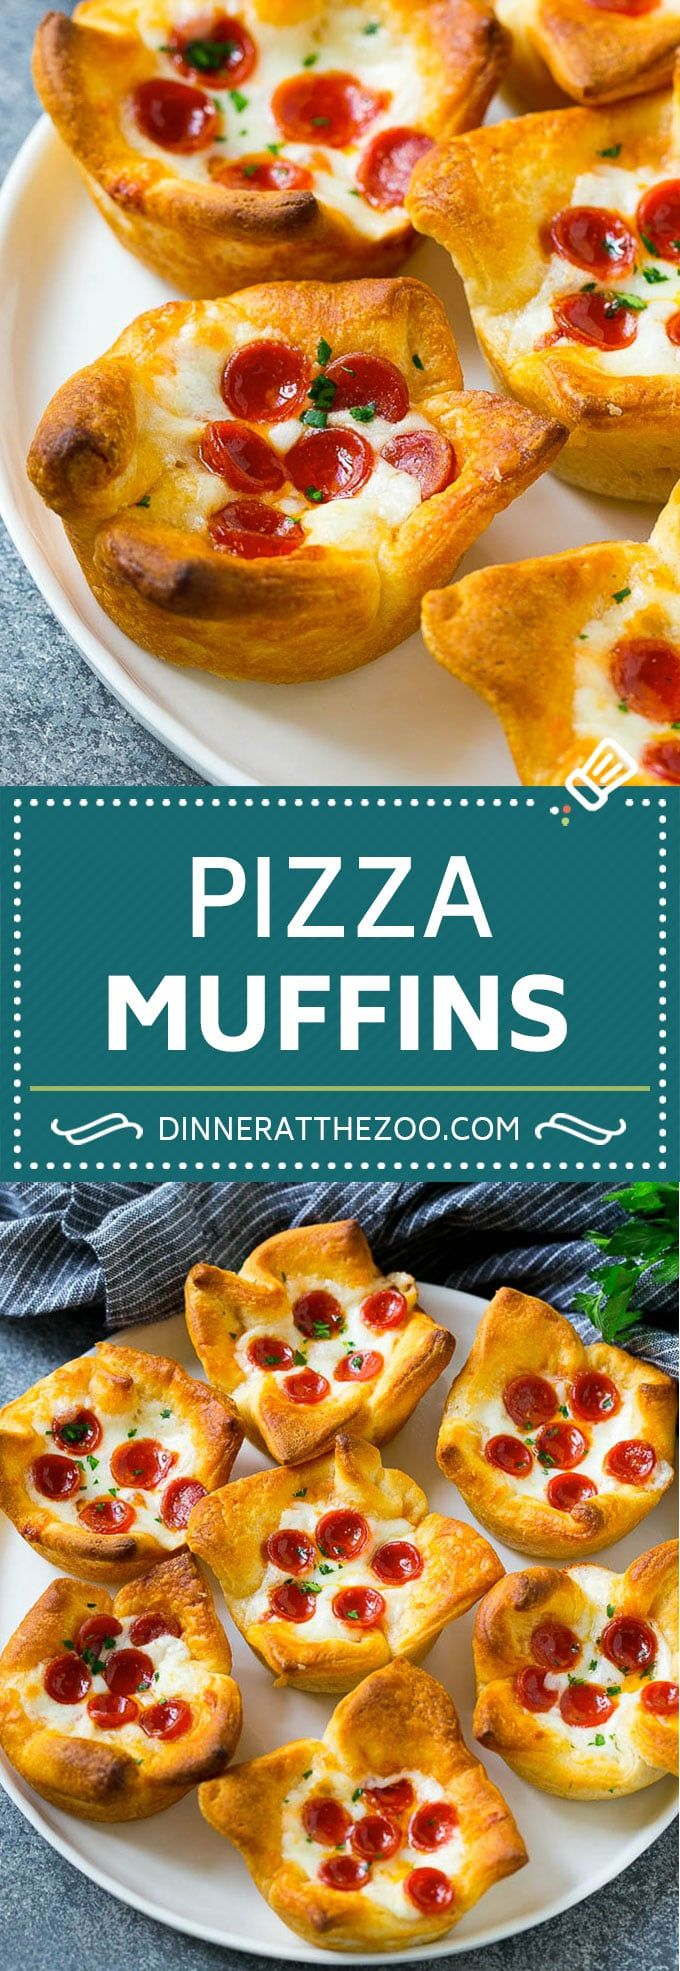 620 best Pizza-licious images on Pinterest | Baking center, Carb ...